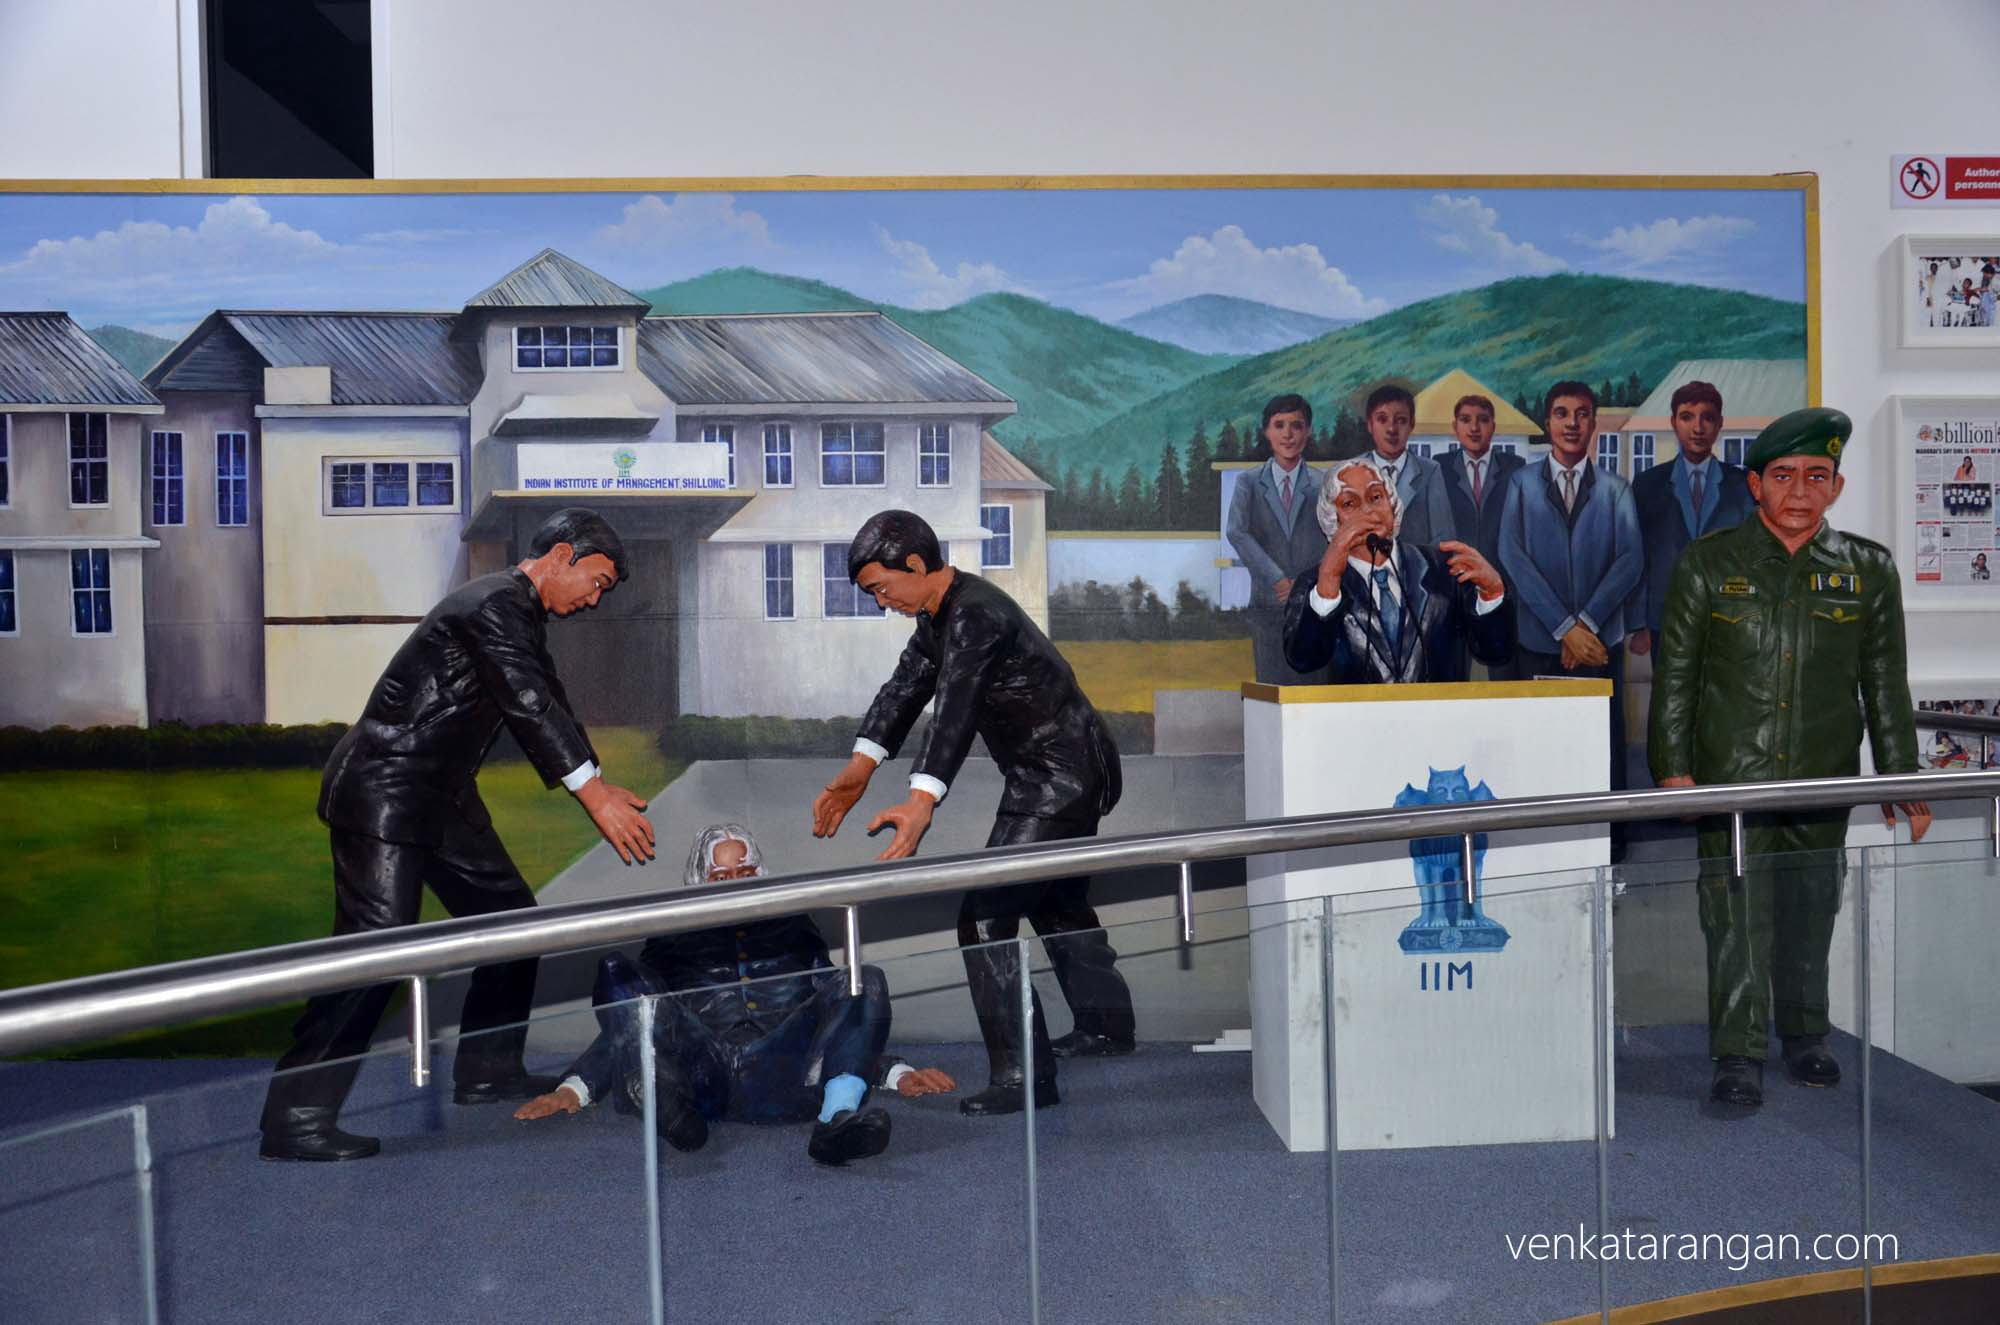 Model showing the last moments of Dr Kalam at the Indian Institute of Management, Shillong